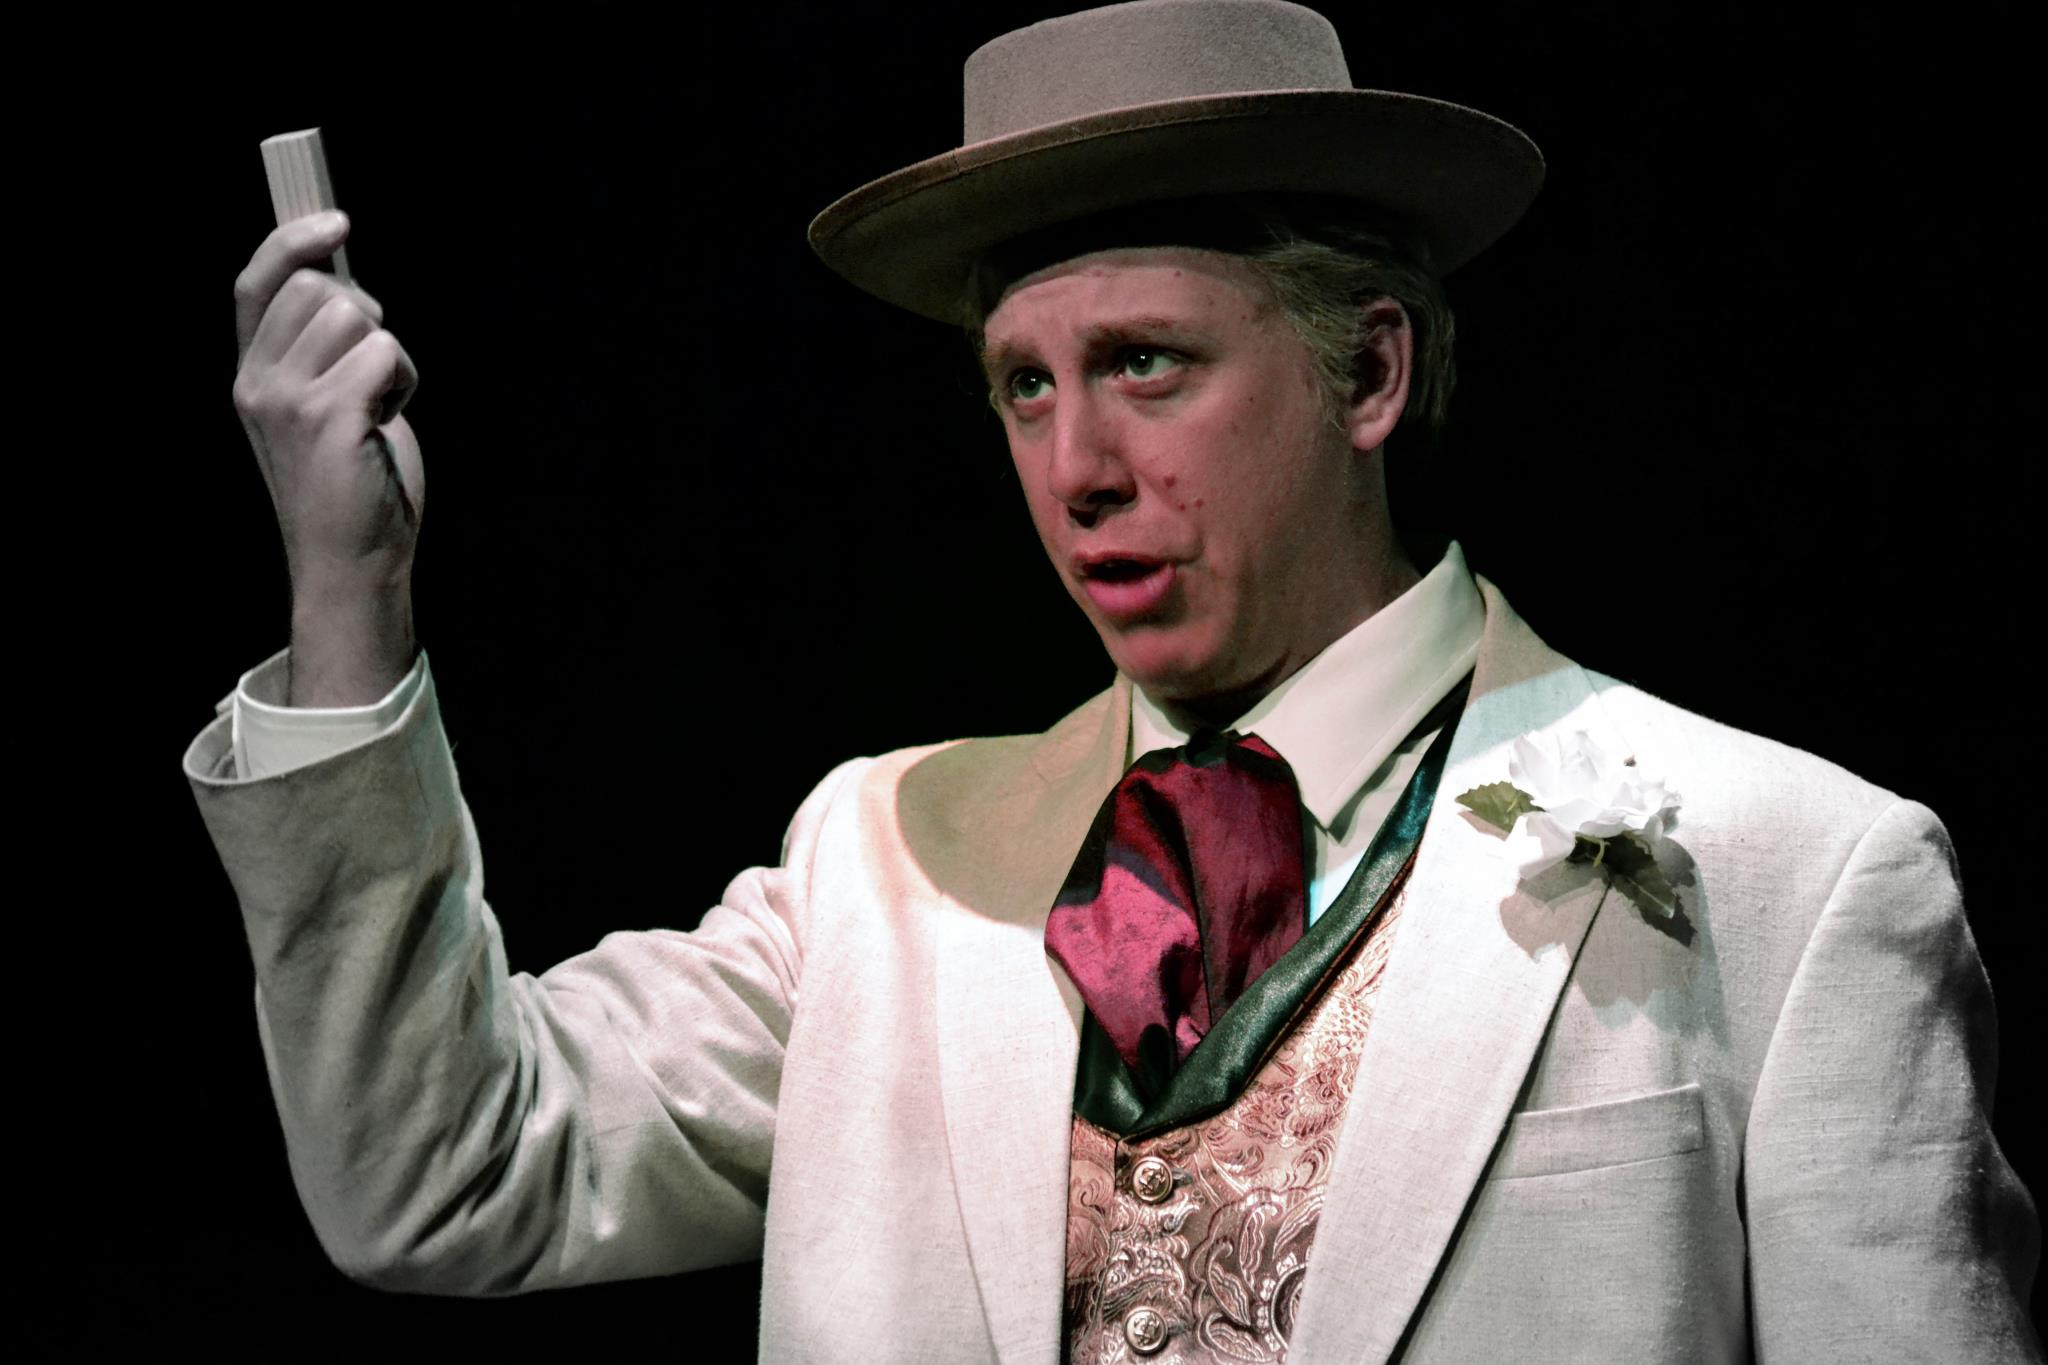 Kevin Kees as Frank Lloyd Wright in Opera Theater of Pittsburgh's Fallingwater production directed by Jonathan Eaton.